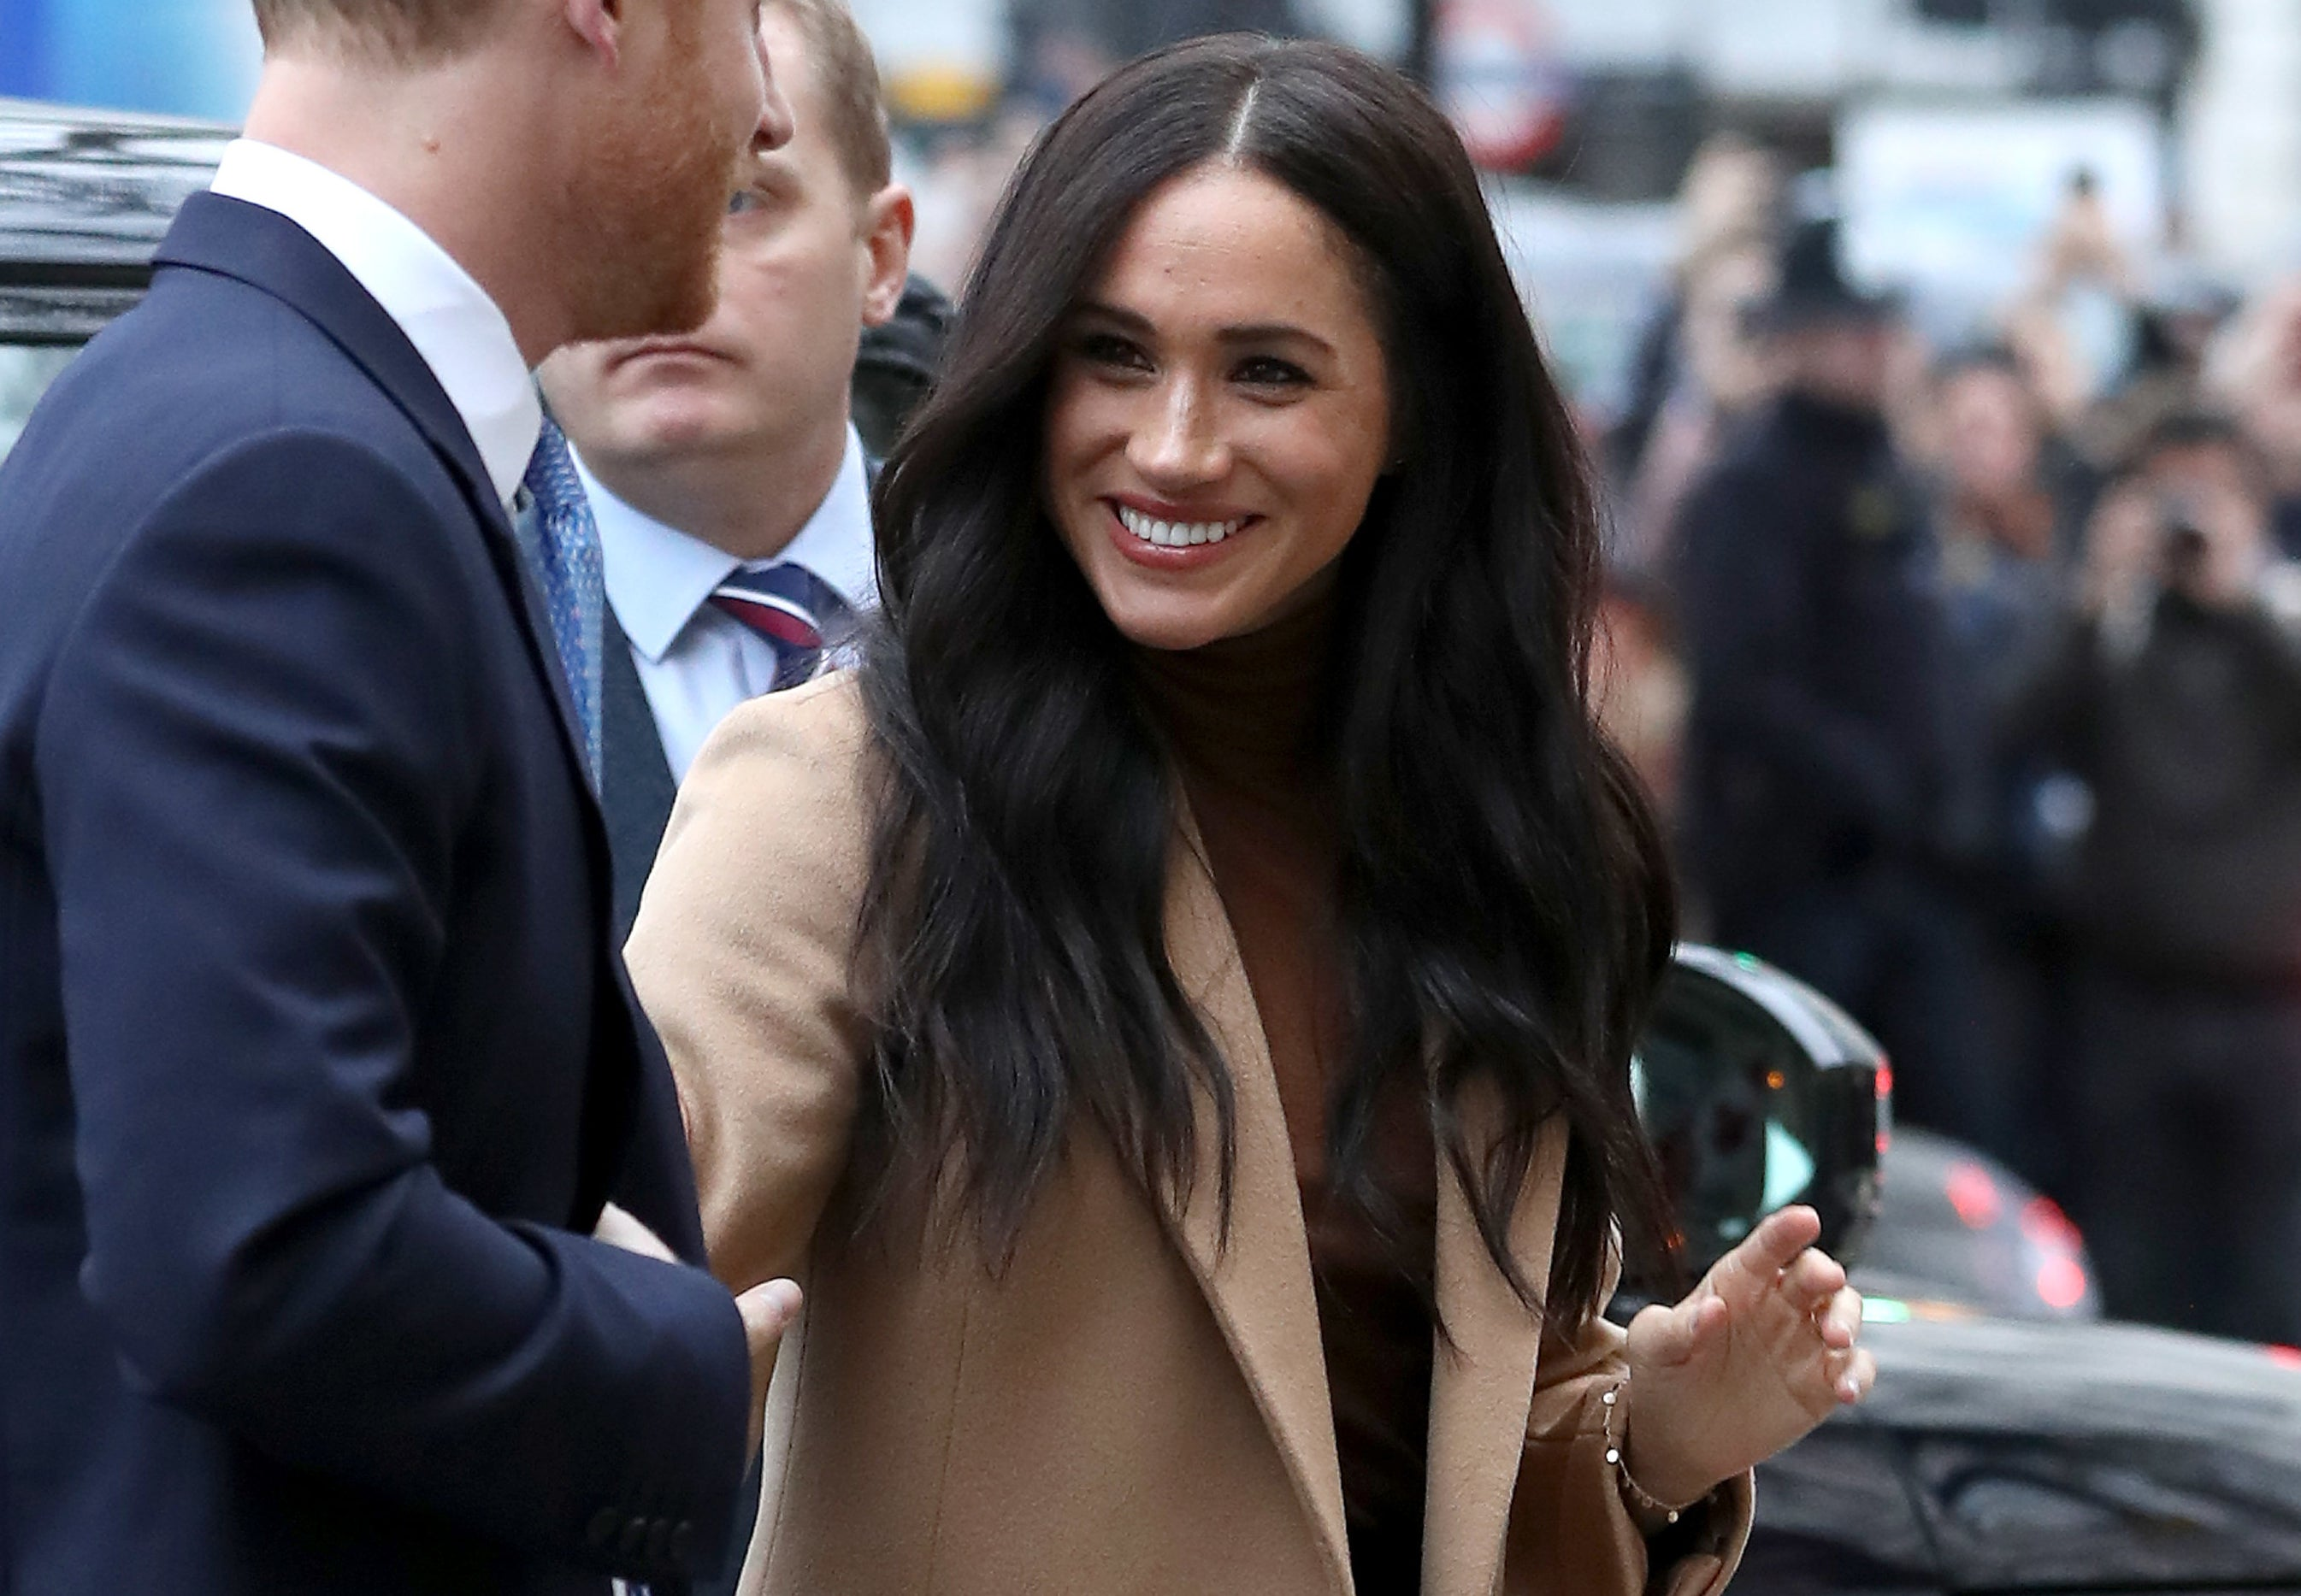 Meghan smiles on her way to an event